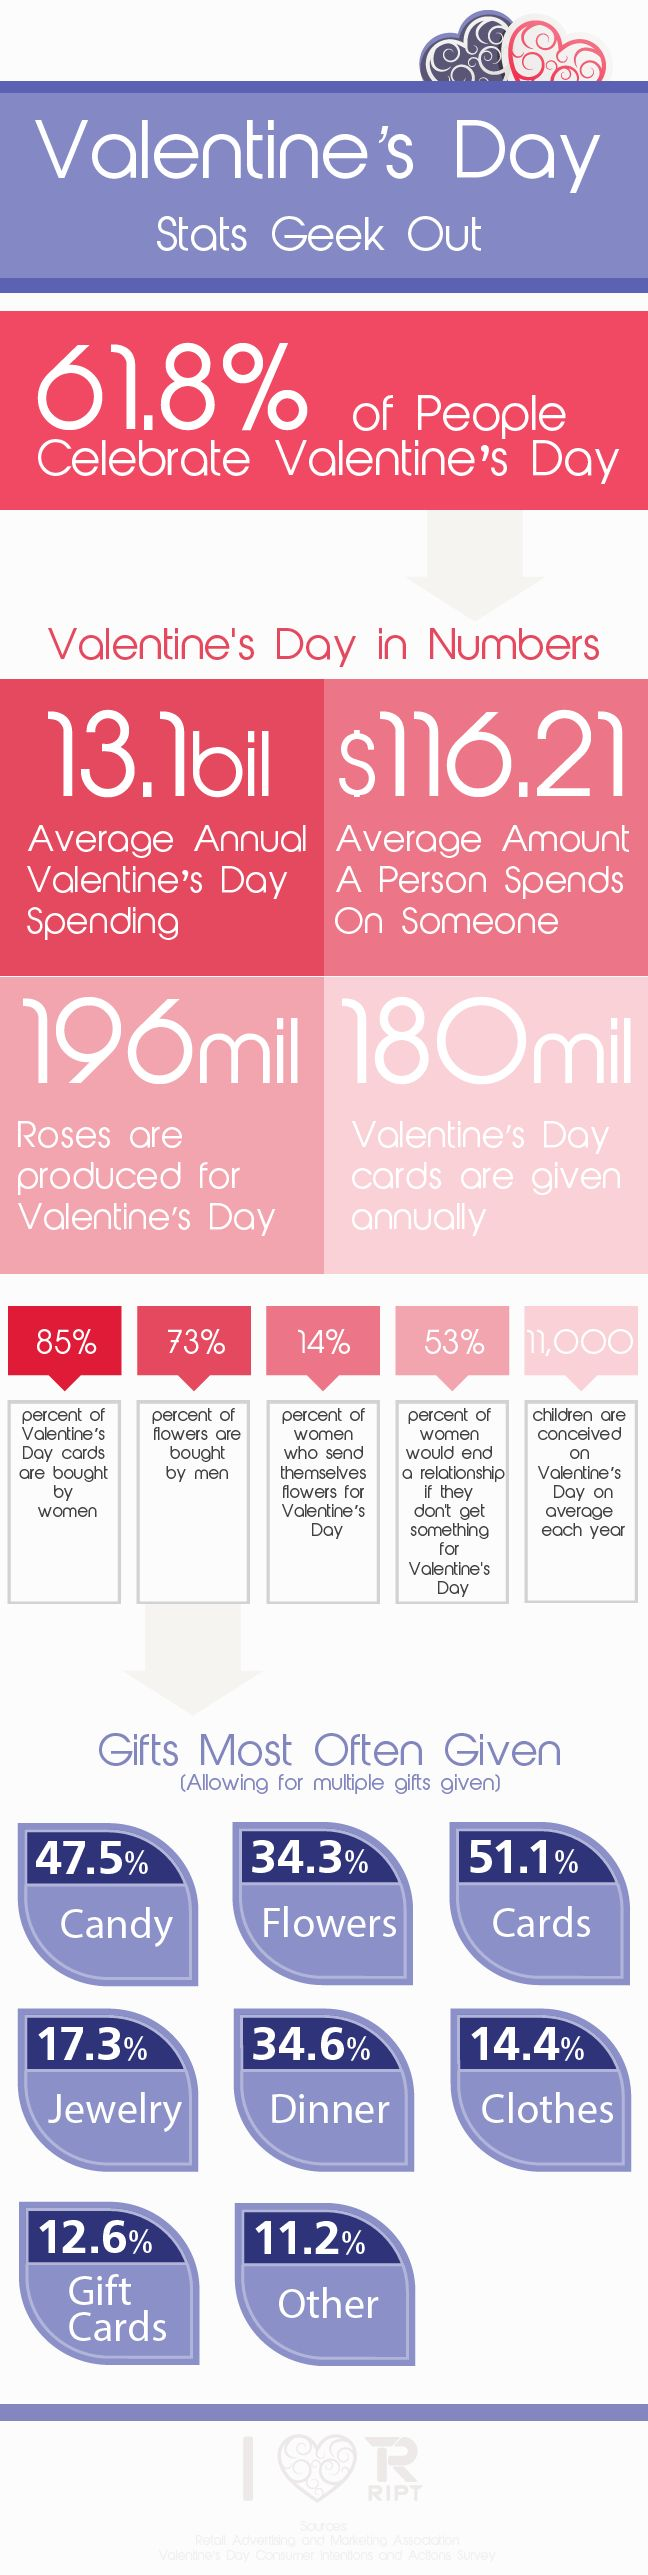 25+ best ideas about Valentines day facts on Pinterest | Cool ...